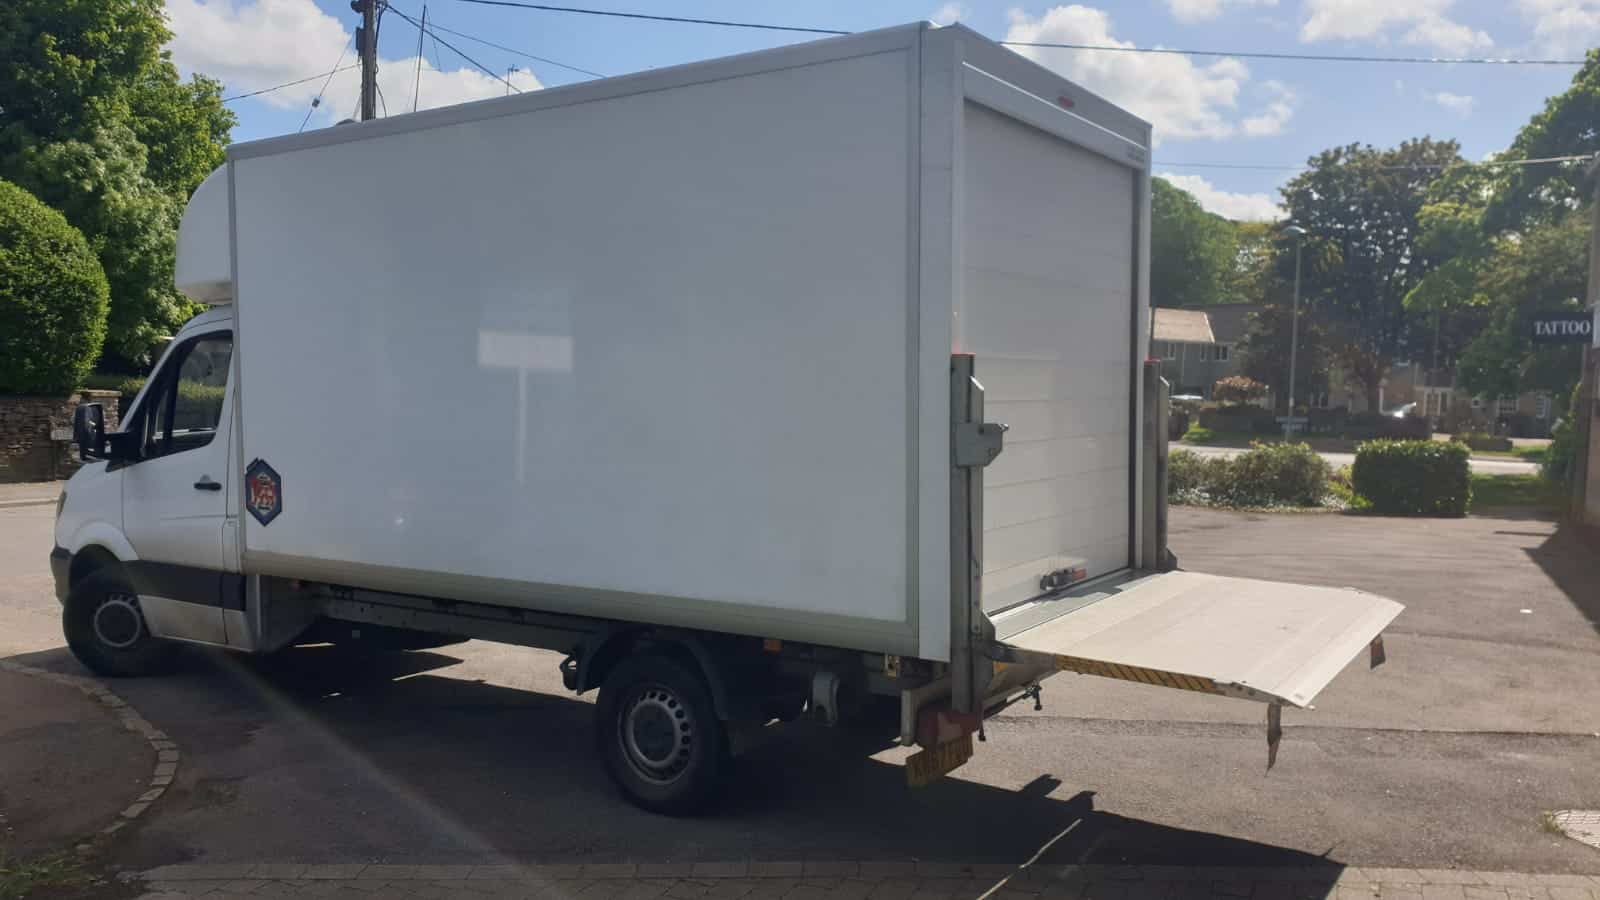 Man & Van service for small 1 or 2 bedrooom moves